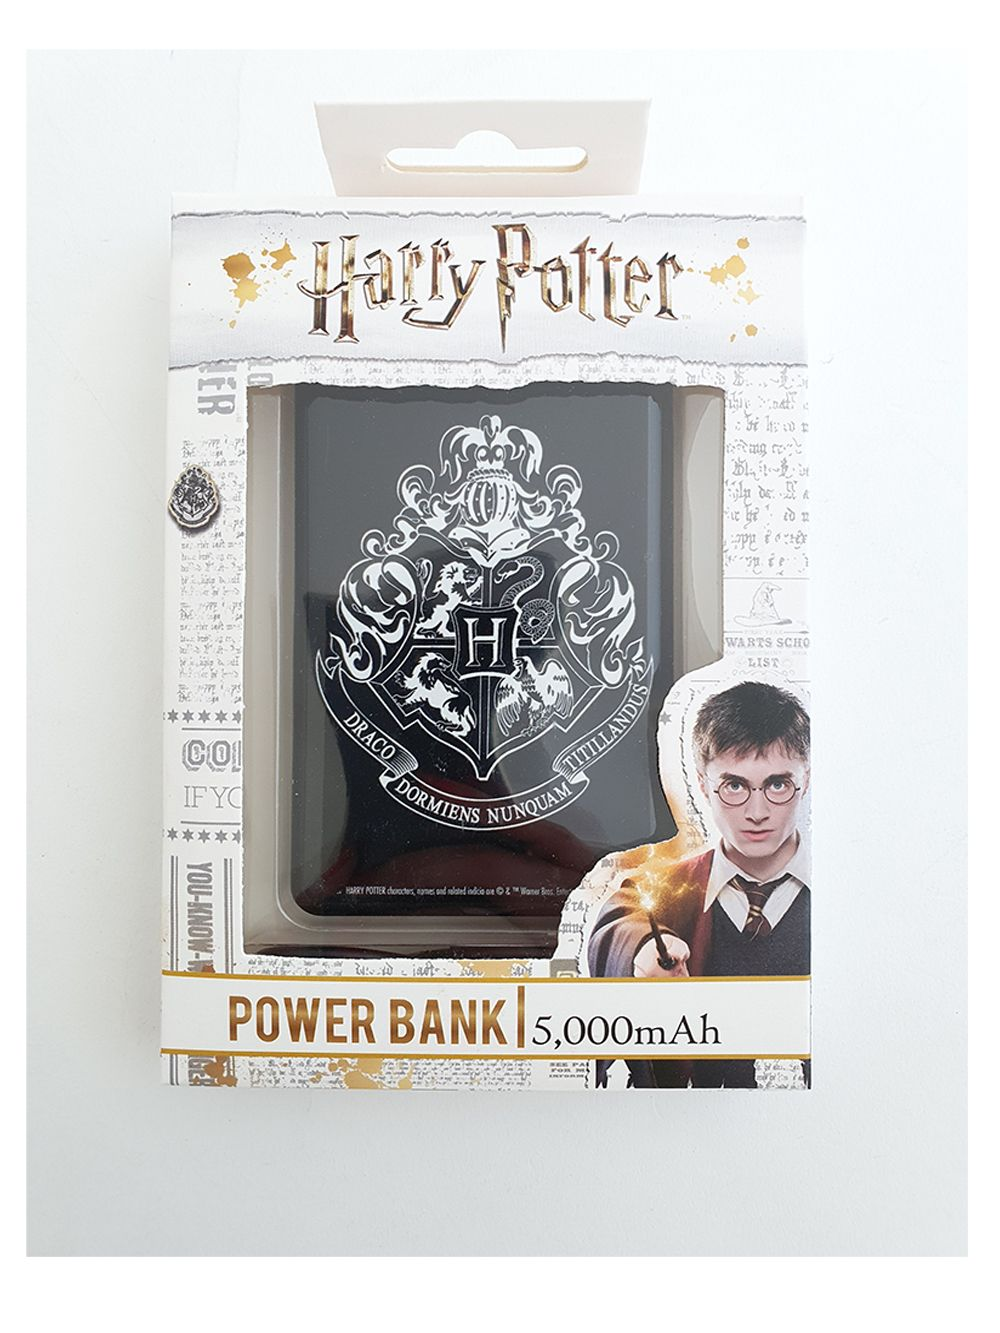 Harry Potter accessories power bank